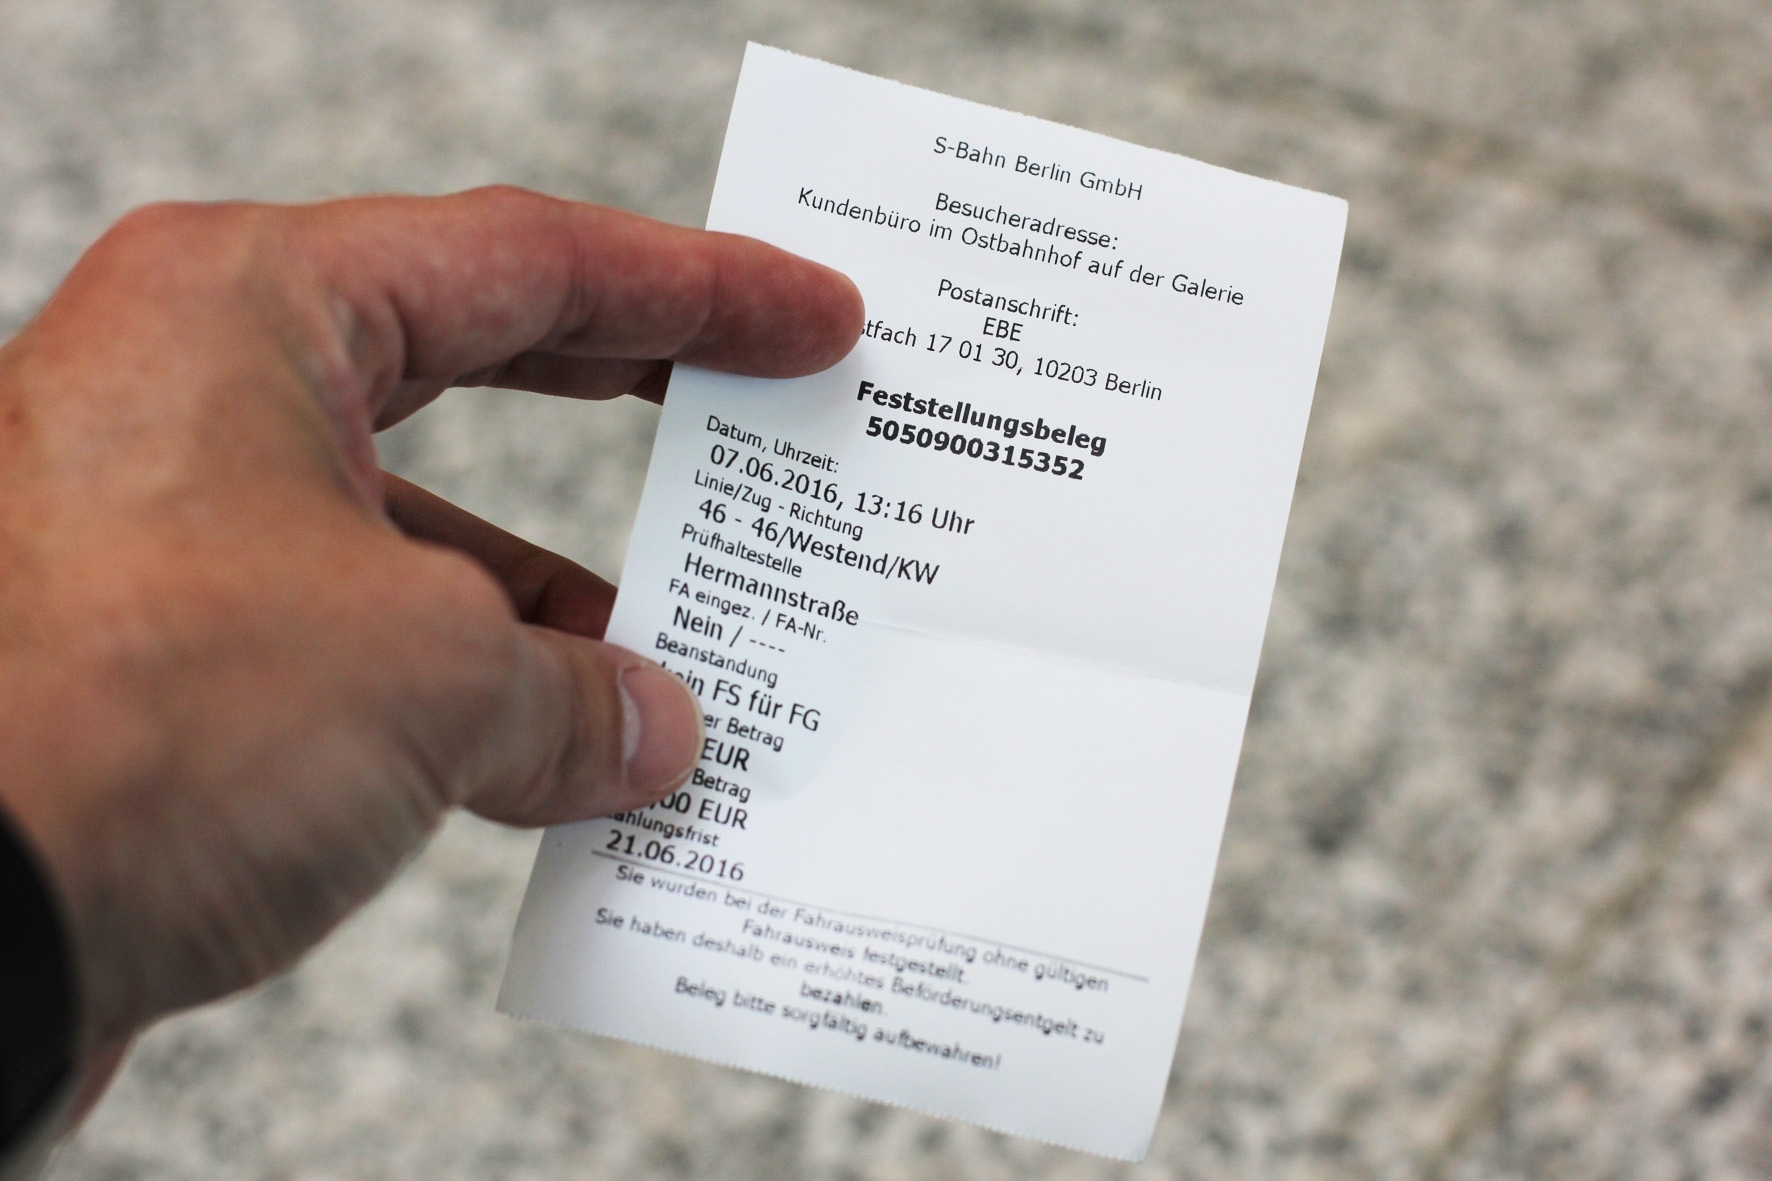 Getting Caught Without A Valid Ticket On Berlin Public Transport And throughout Berlin Ticket Bahn